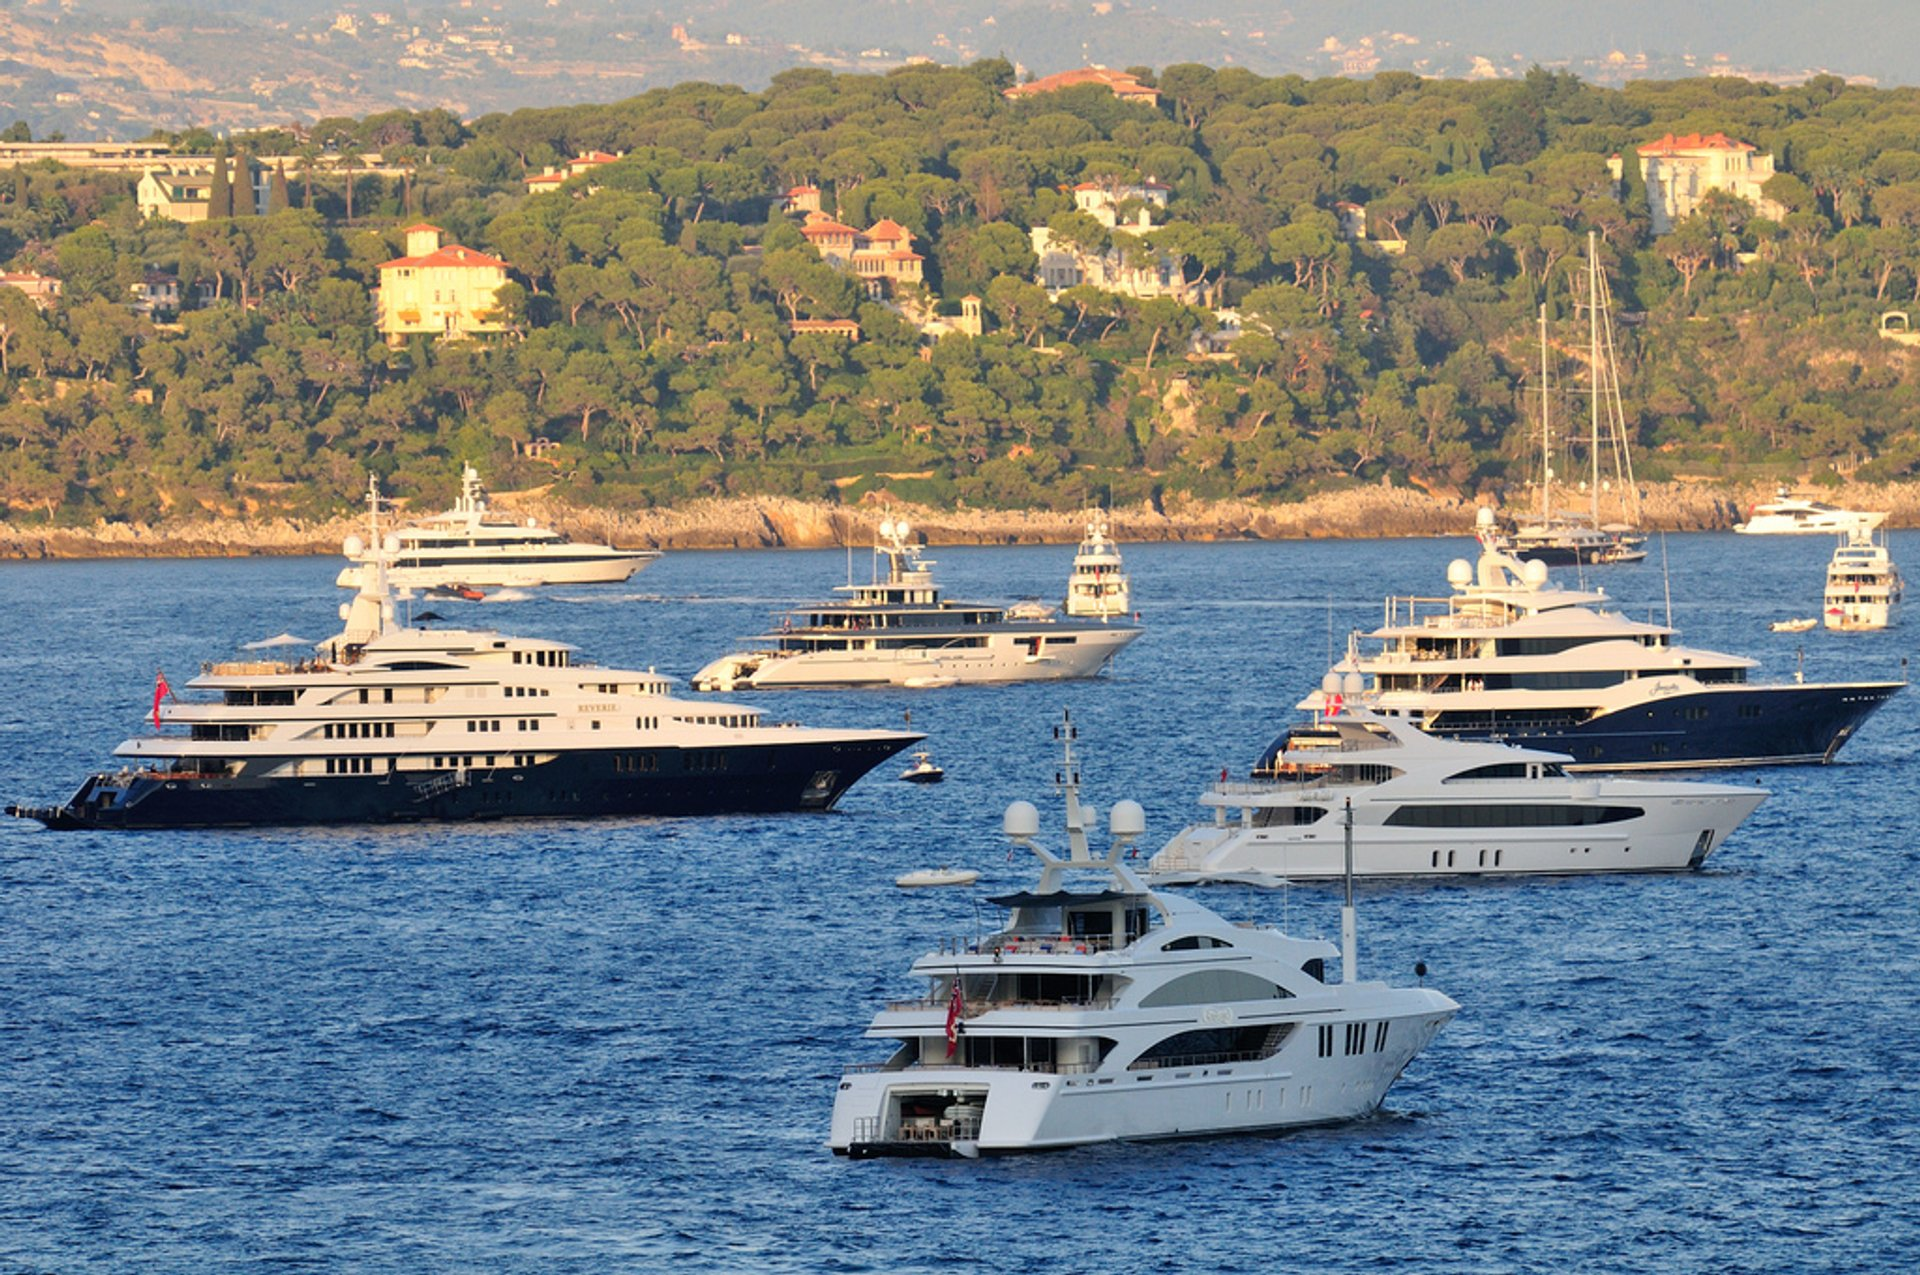 Best time to see Monaco Yacht Show in Monaco 2020